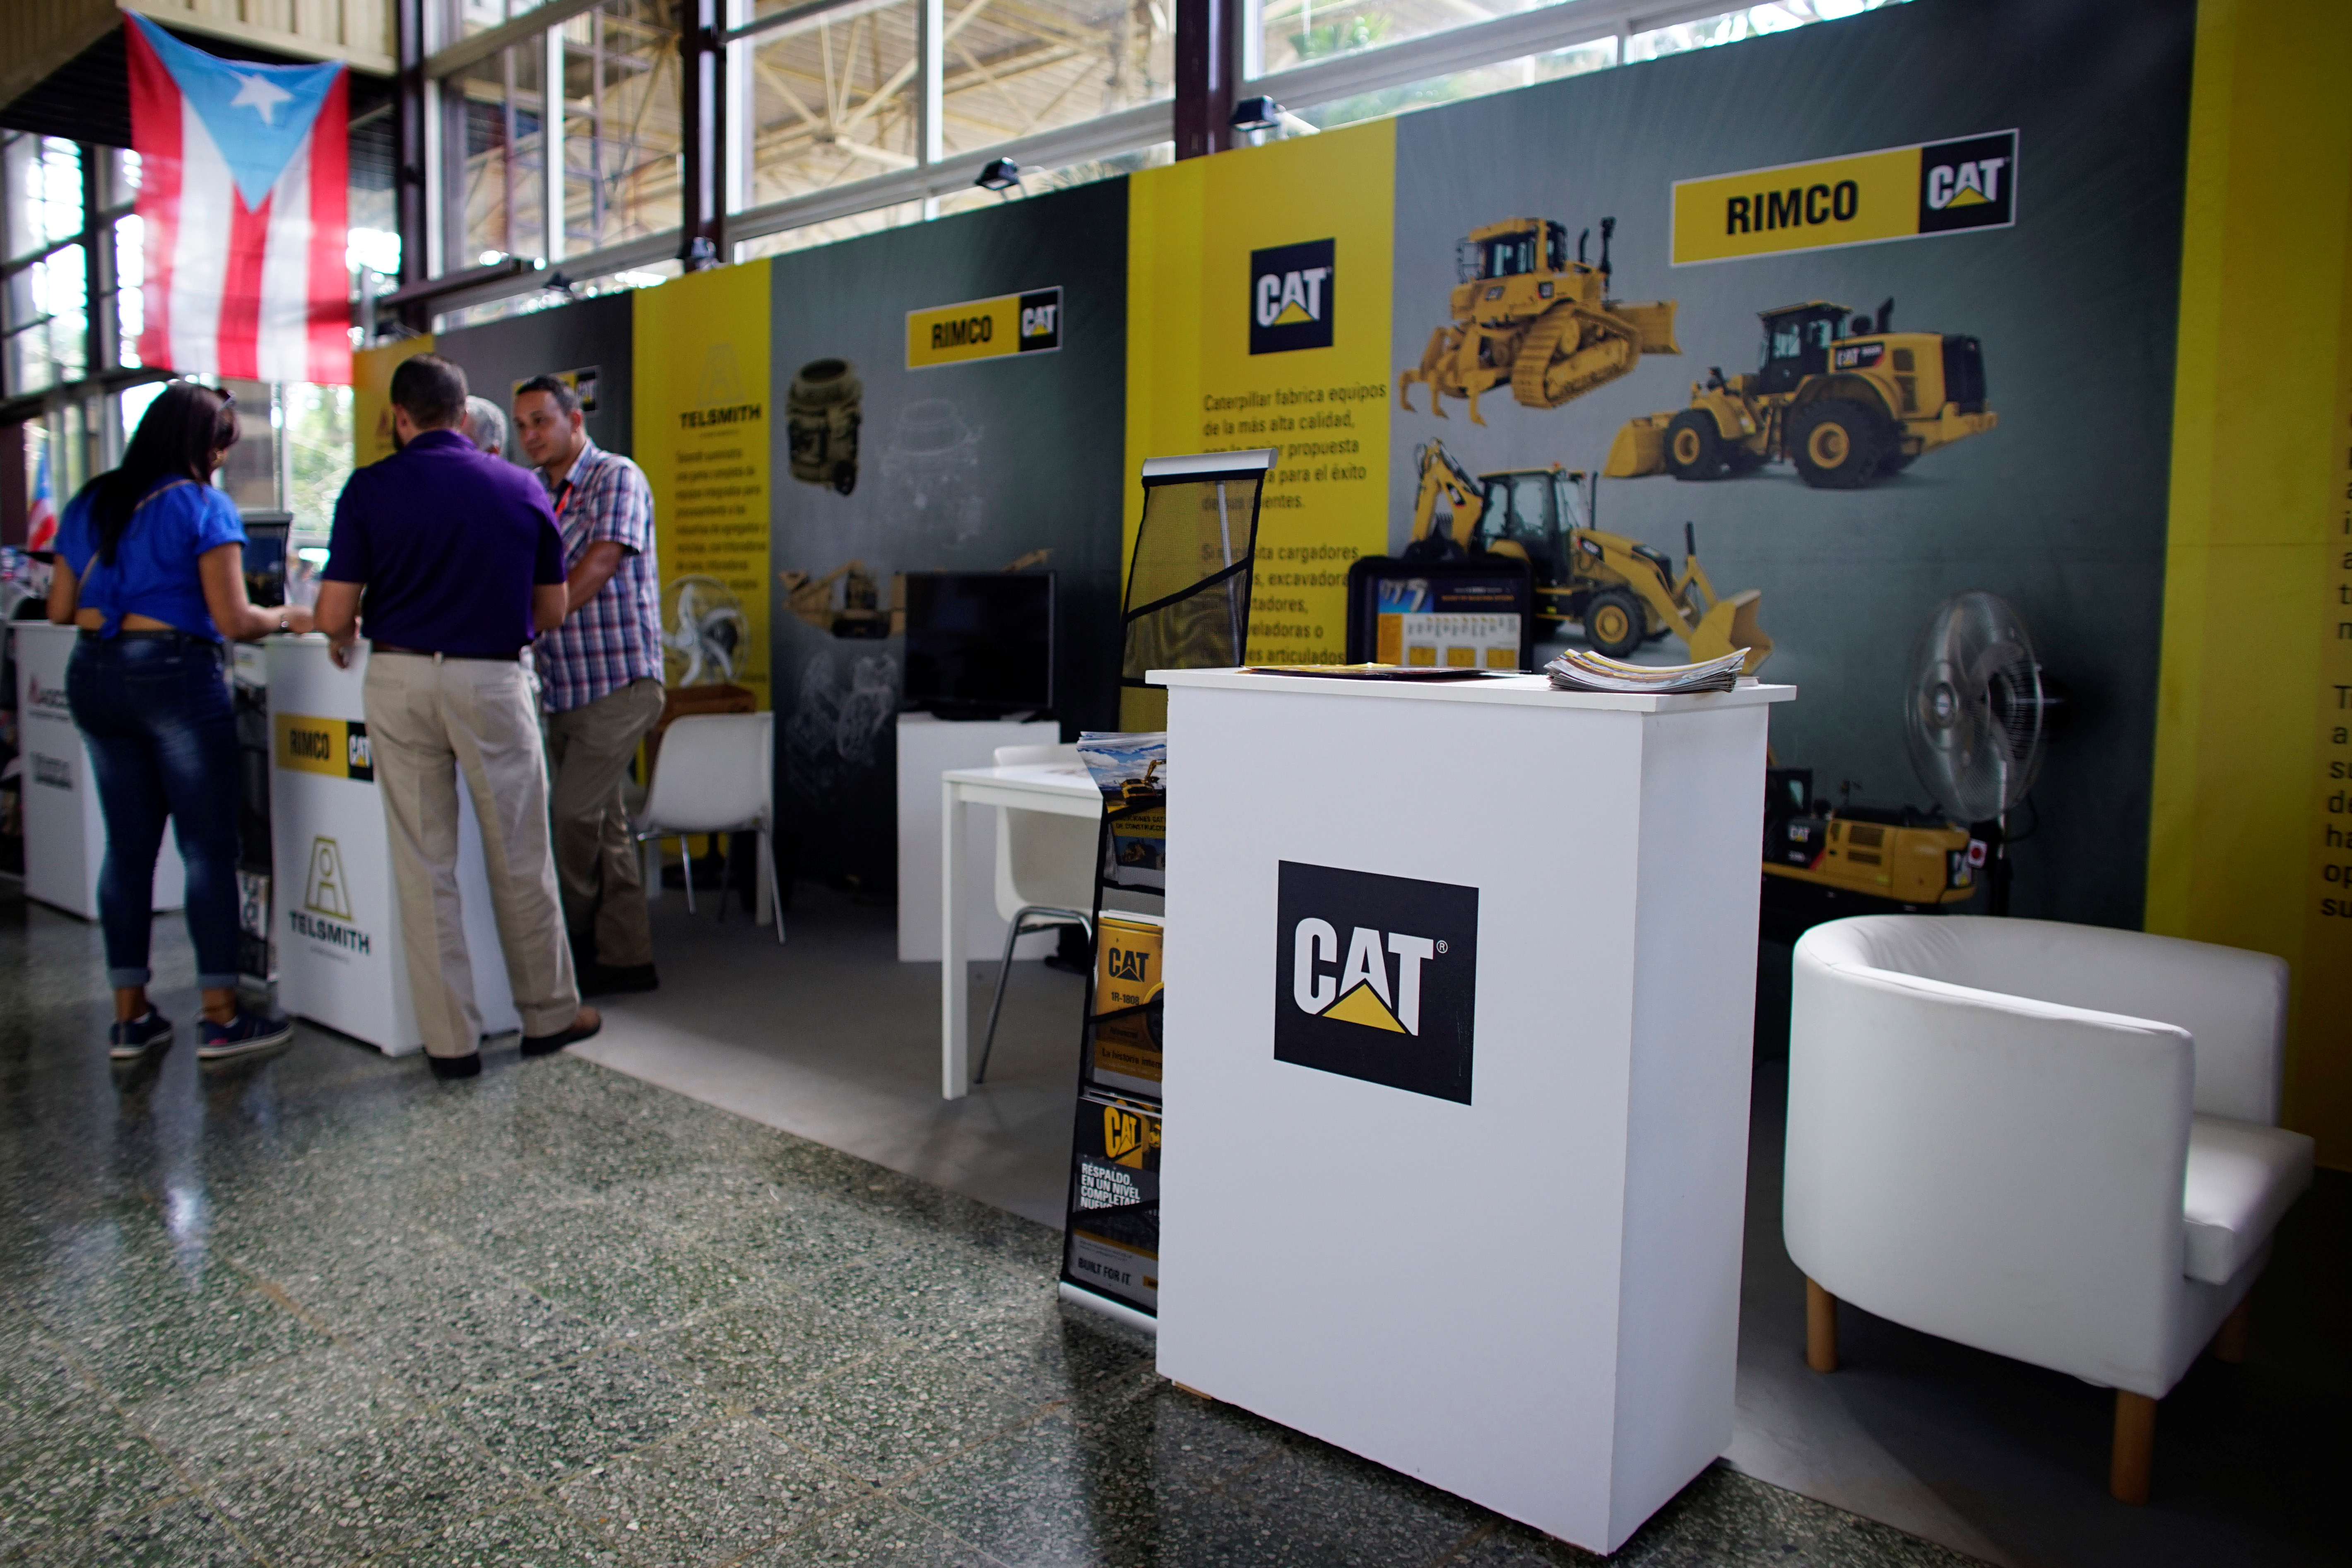 FILE - A view of the booth of Rimco, Caterpillar Inc's dealer for Cuba, at the 35th Havana International Fair in Havana, Cuba, Nov. 1, 2017.